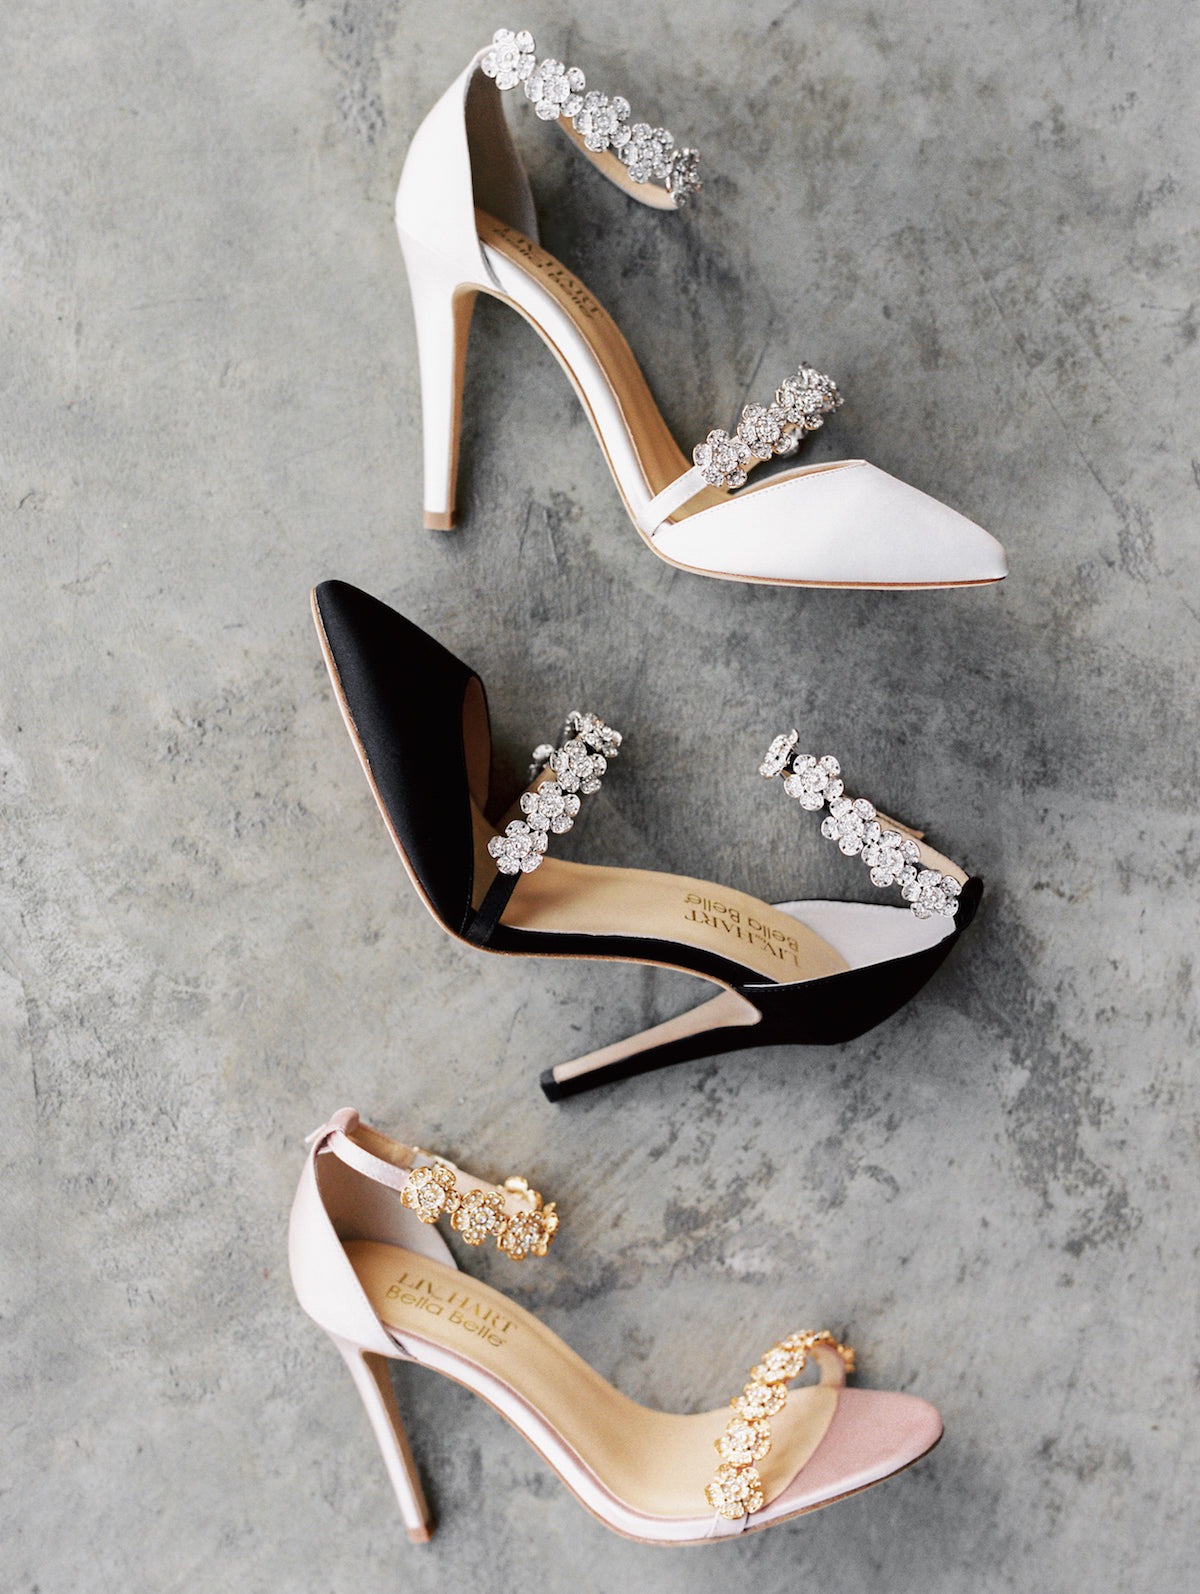 bella belle bridesmaids shoes